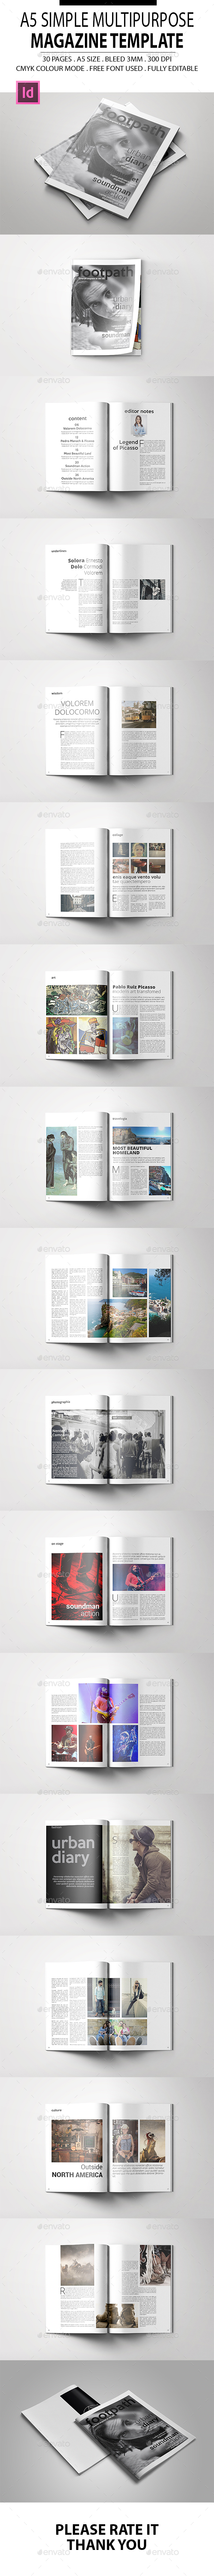 A5 Simple Multipurpose Magazine Template - Magazines Print Templates